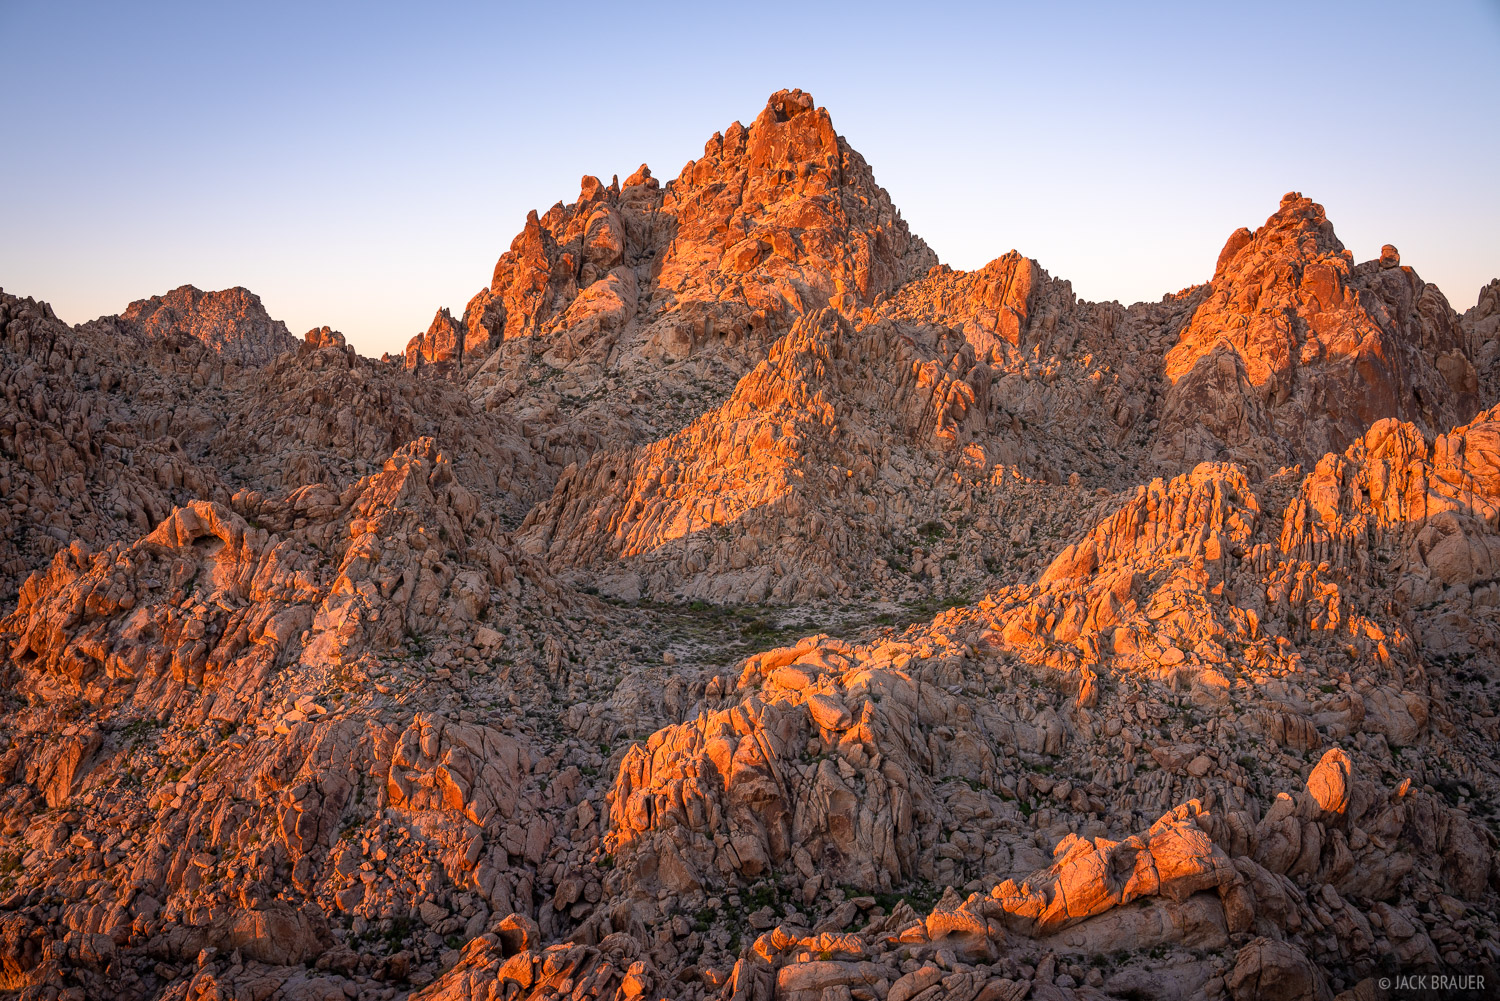 Sunrise light in the Coxcomb Mountains.